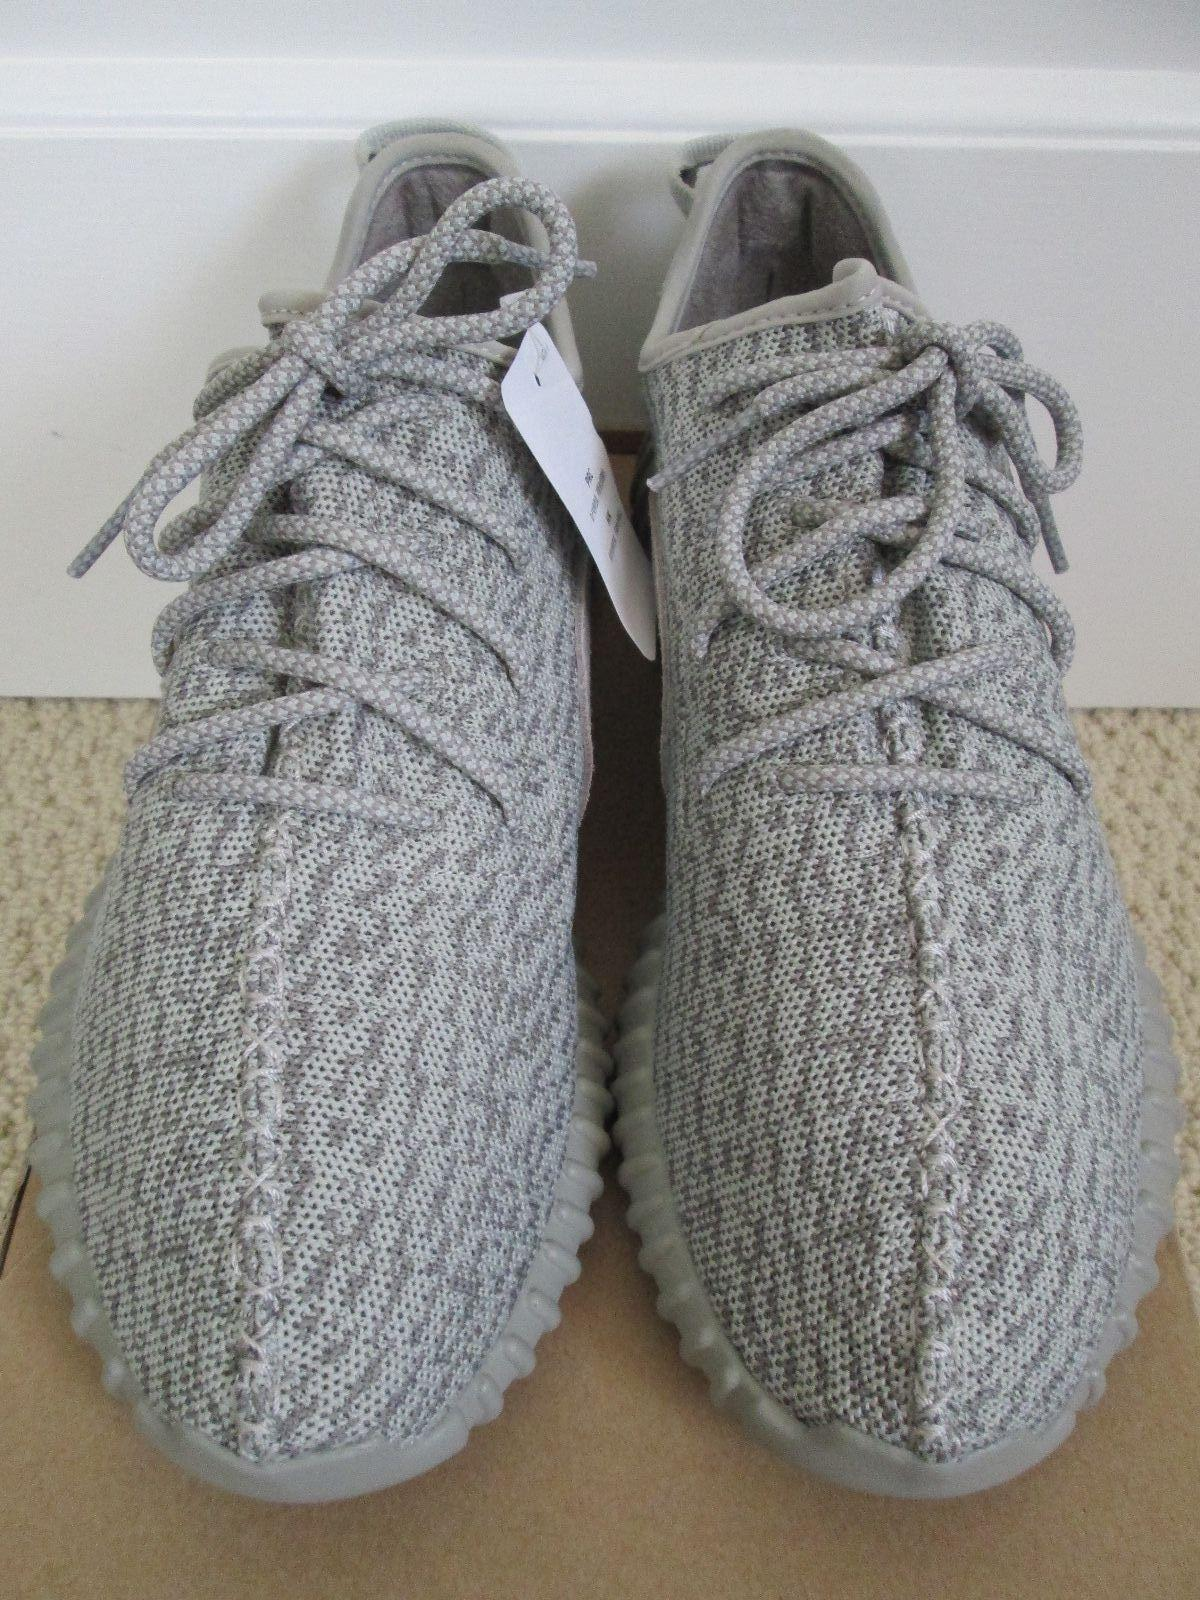 1b773508f ... Adidas Yeezy Boost 350 Moonrock Agagra AQ2660 Sneakers Men s women  fashion shoes 12